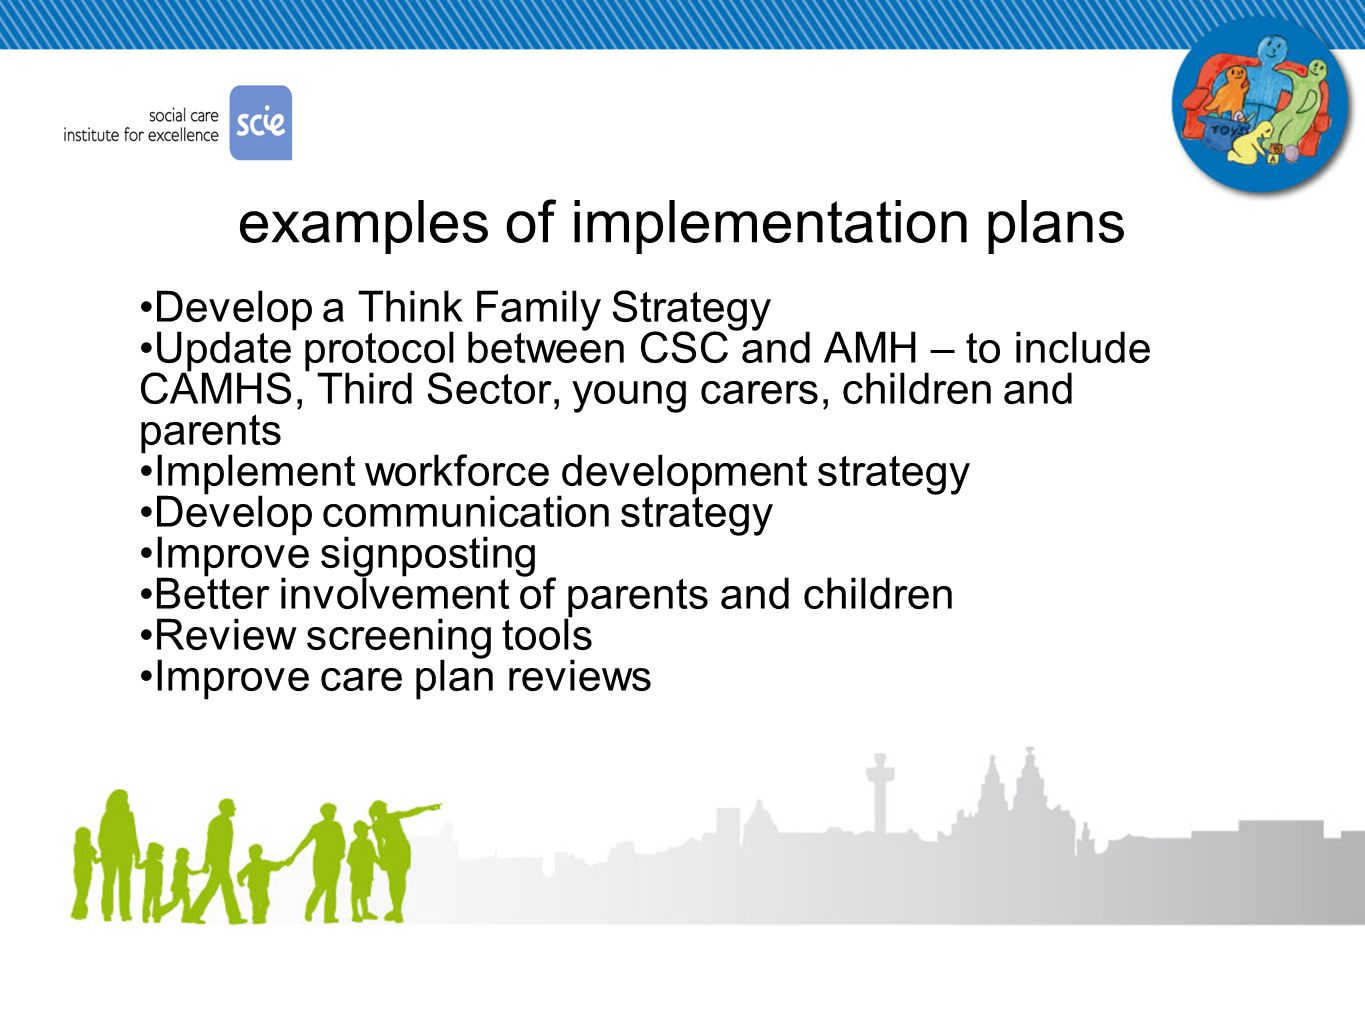 examples of implementation plans Develop a Think Family Strategy Update protocol between CSC and AMH – to include CAMHS, Third Sector, young carers, children and parents Implement workforce development strategy Develop communication strategy Improve signposting Better involvement of parents and children Review screening tools Improve care plan reviews